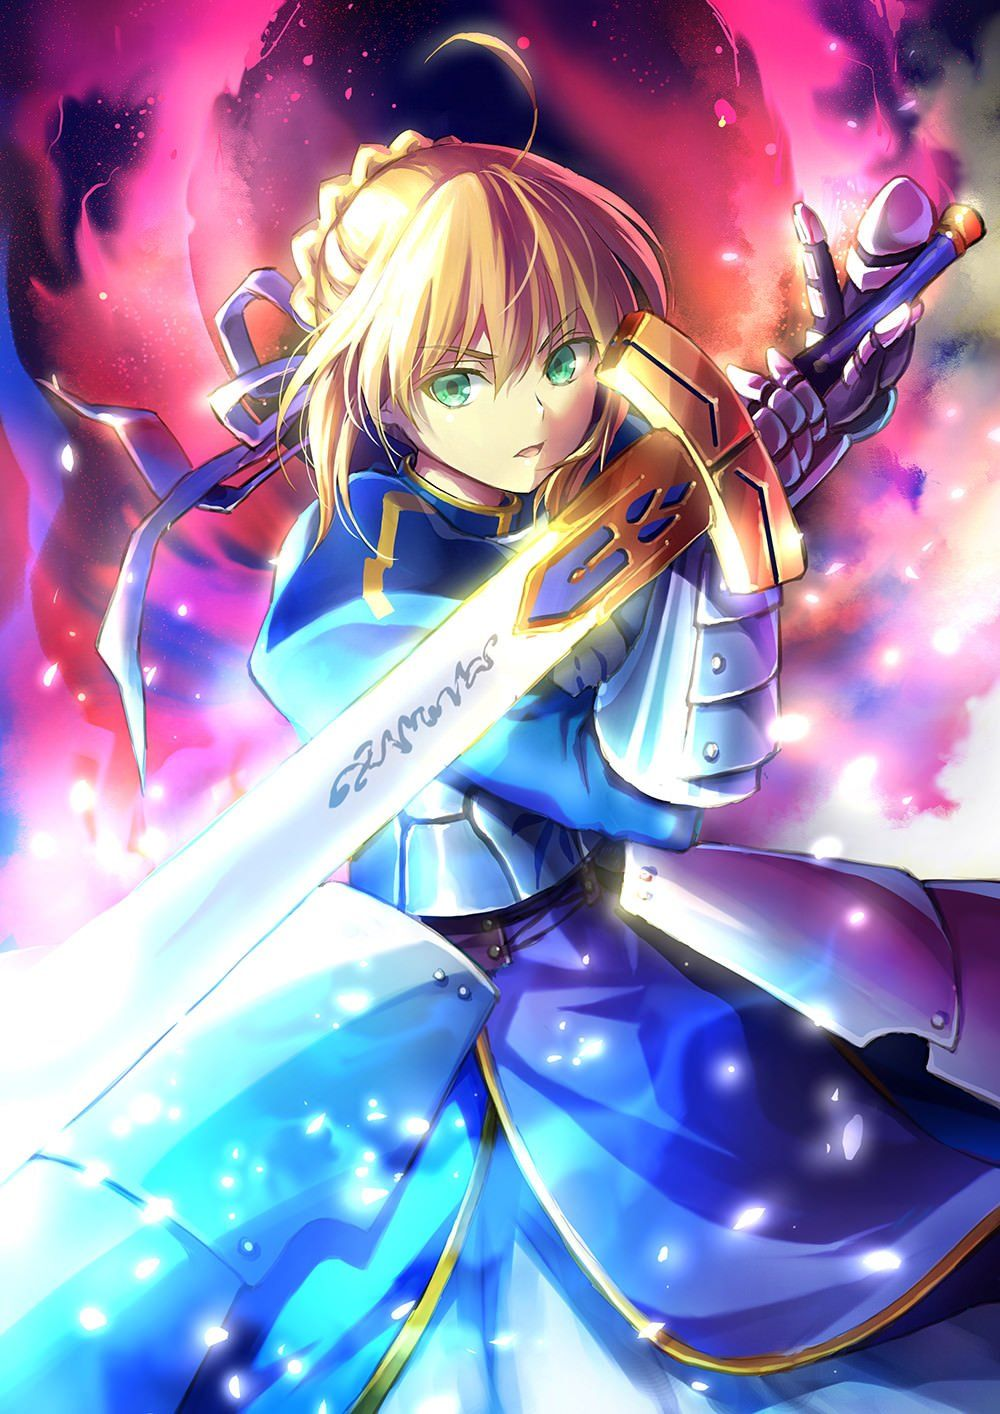 The OG Saber fatestaynight (With images) Fate stay